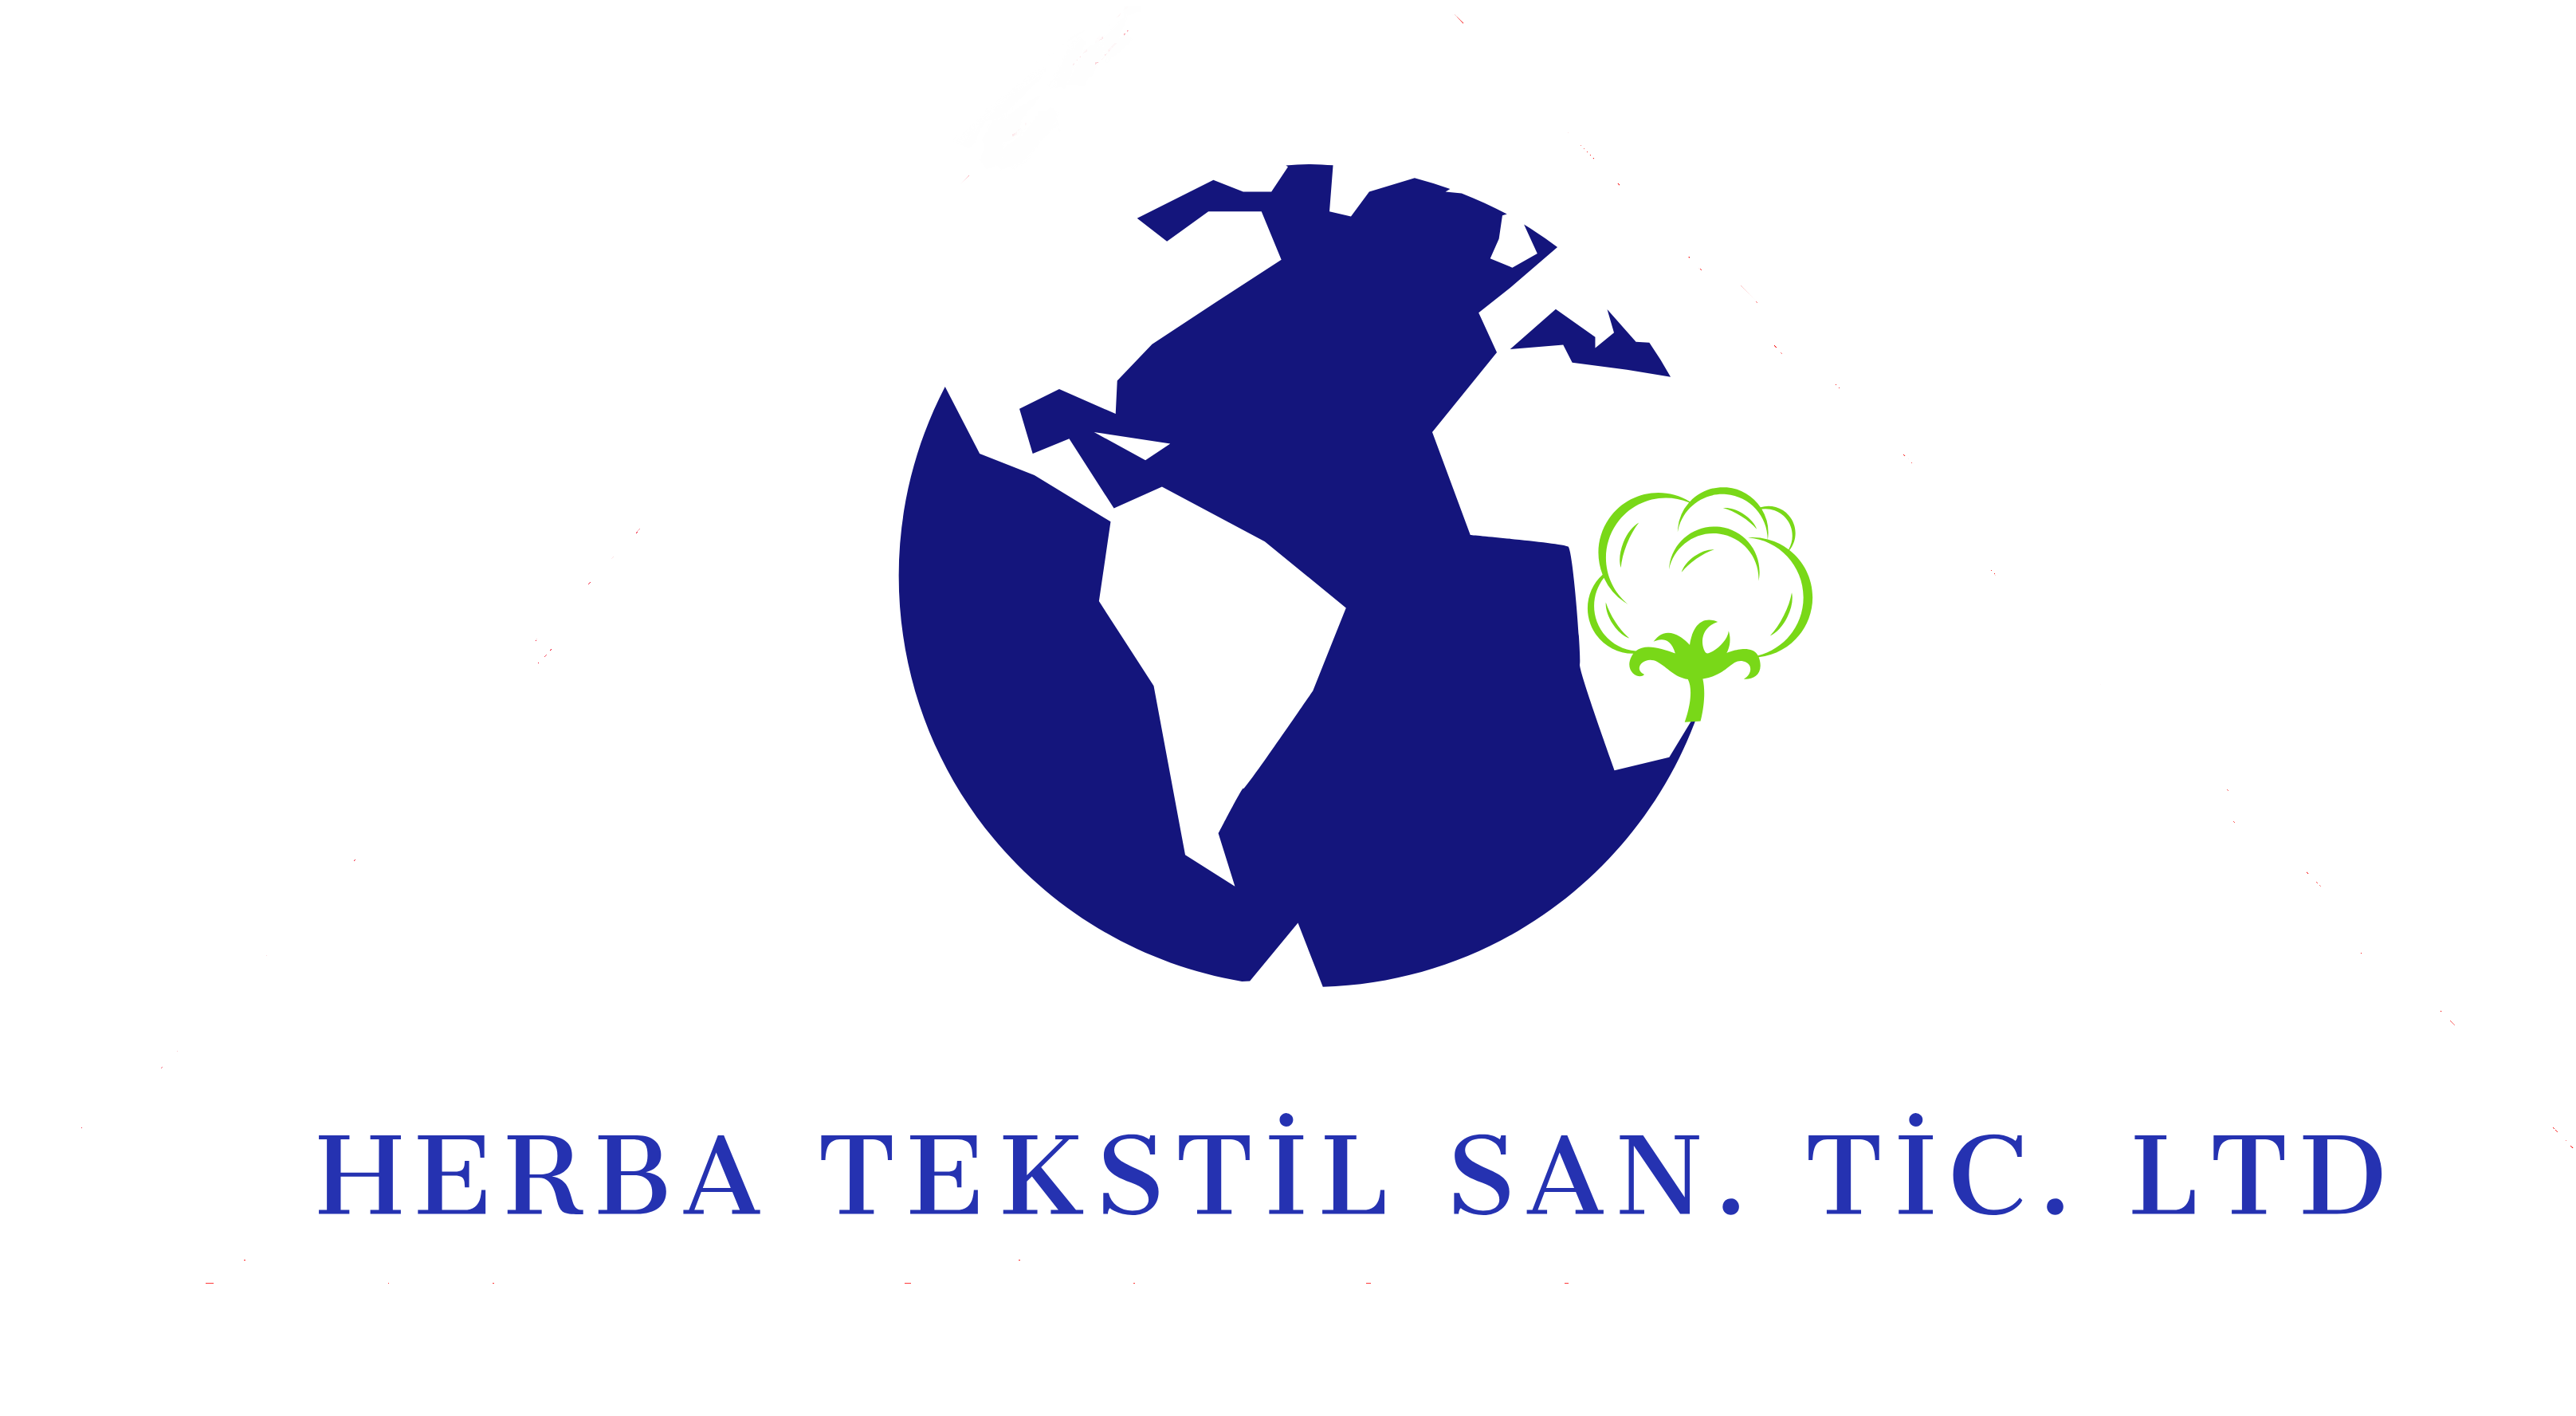 HERBA TEKSTİL SAN. TIC. LTD